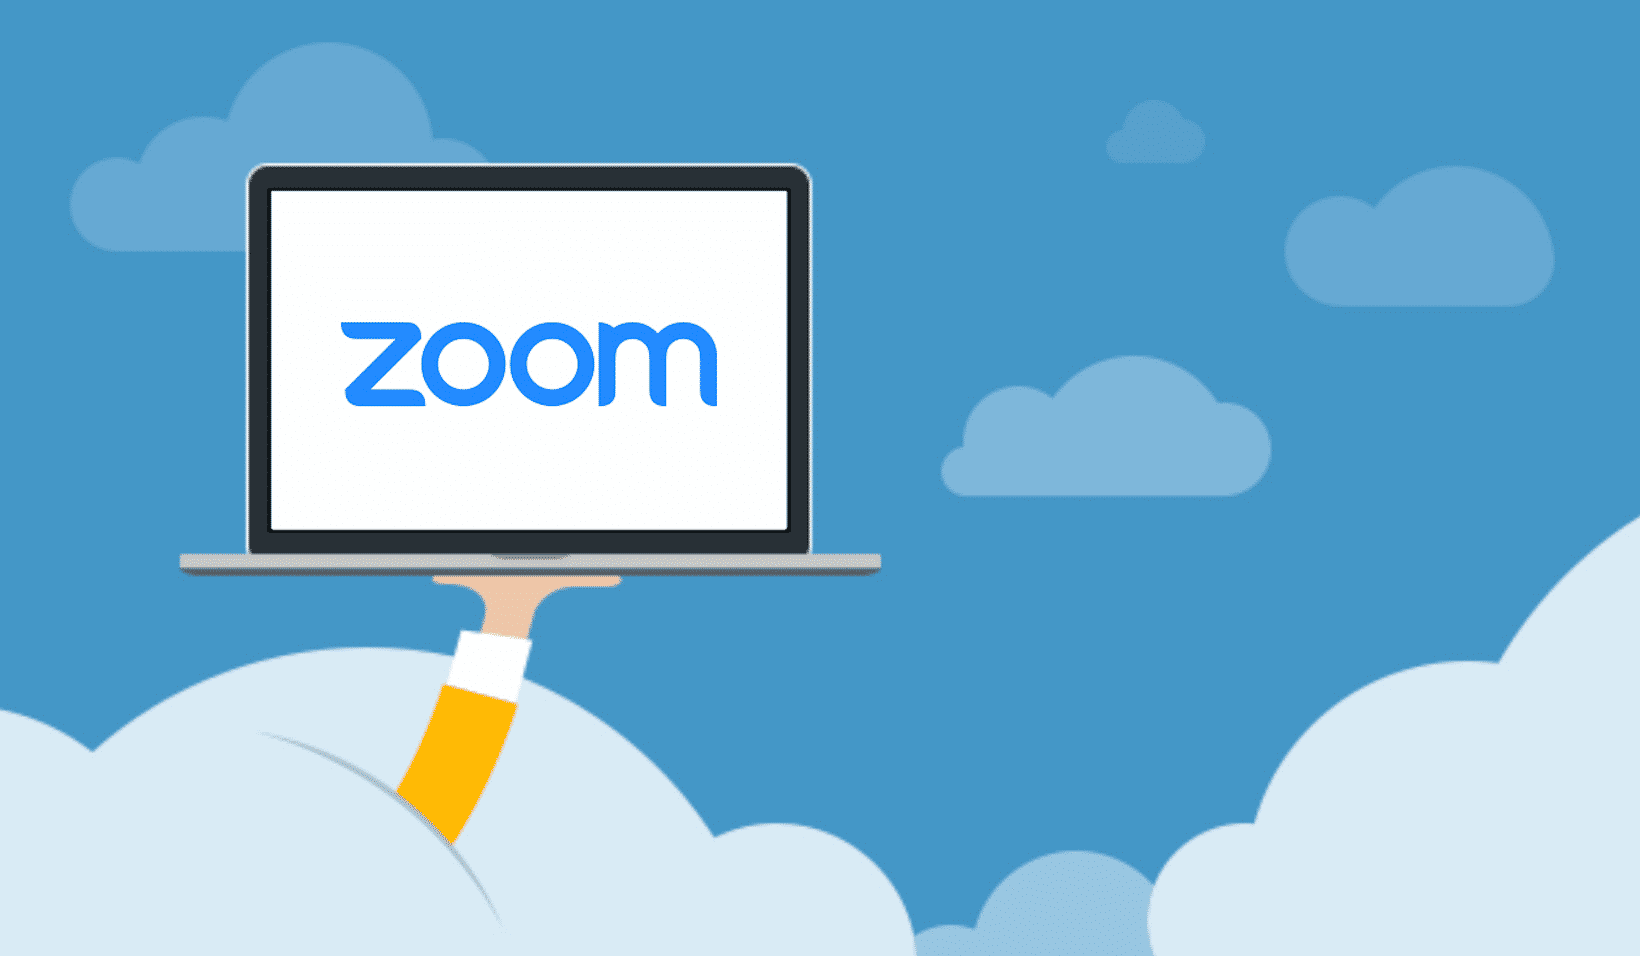 Zoom faces yet another security issue